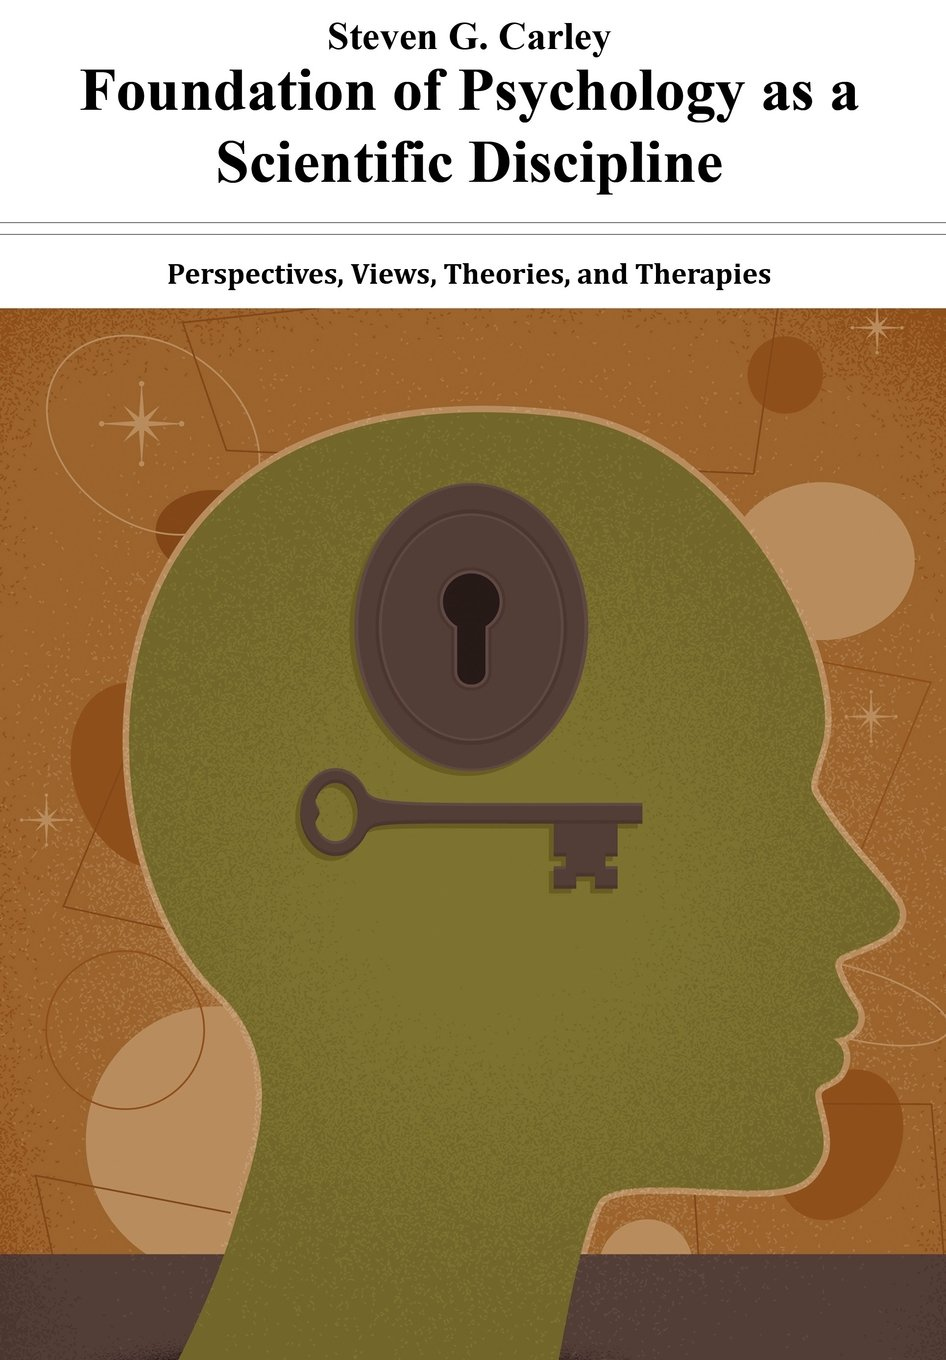 Download Foundation of Psychology as a Scientific Discipline - Perspectives, Views, Theories, and Therapies PDF